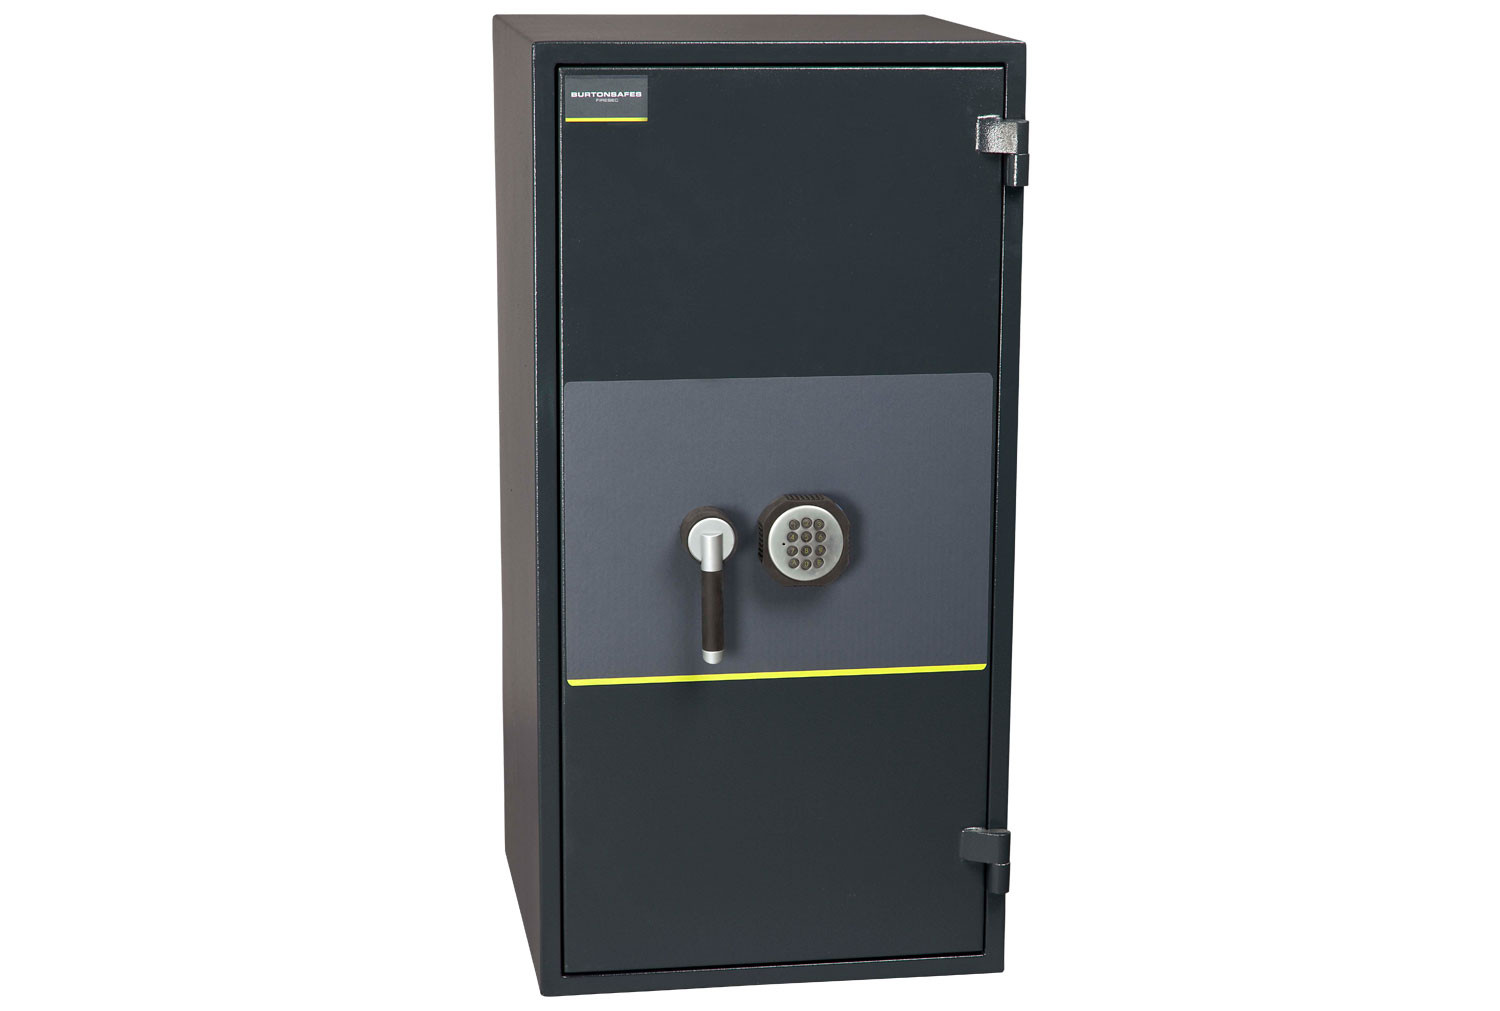 Burton Firesec 10/60 Fire Safe Size 3 With Electronic Lock (148ltrs)